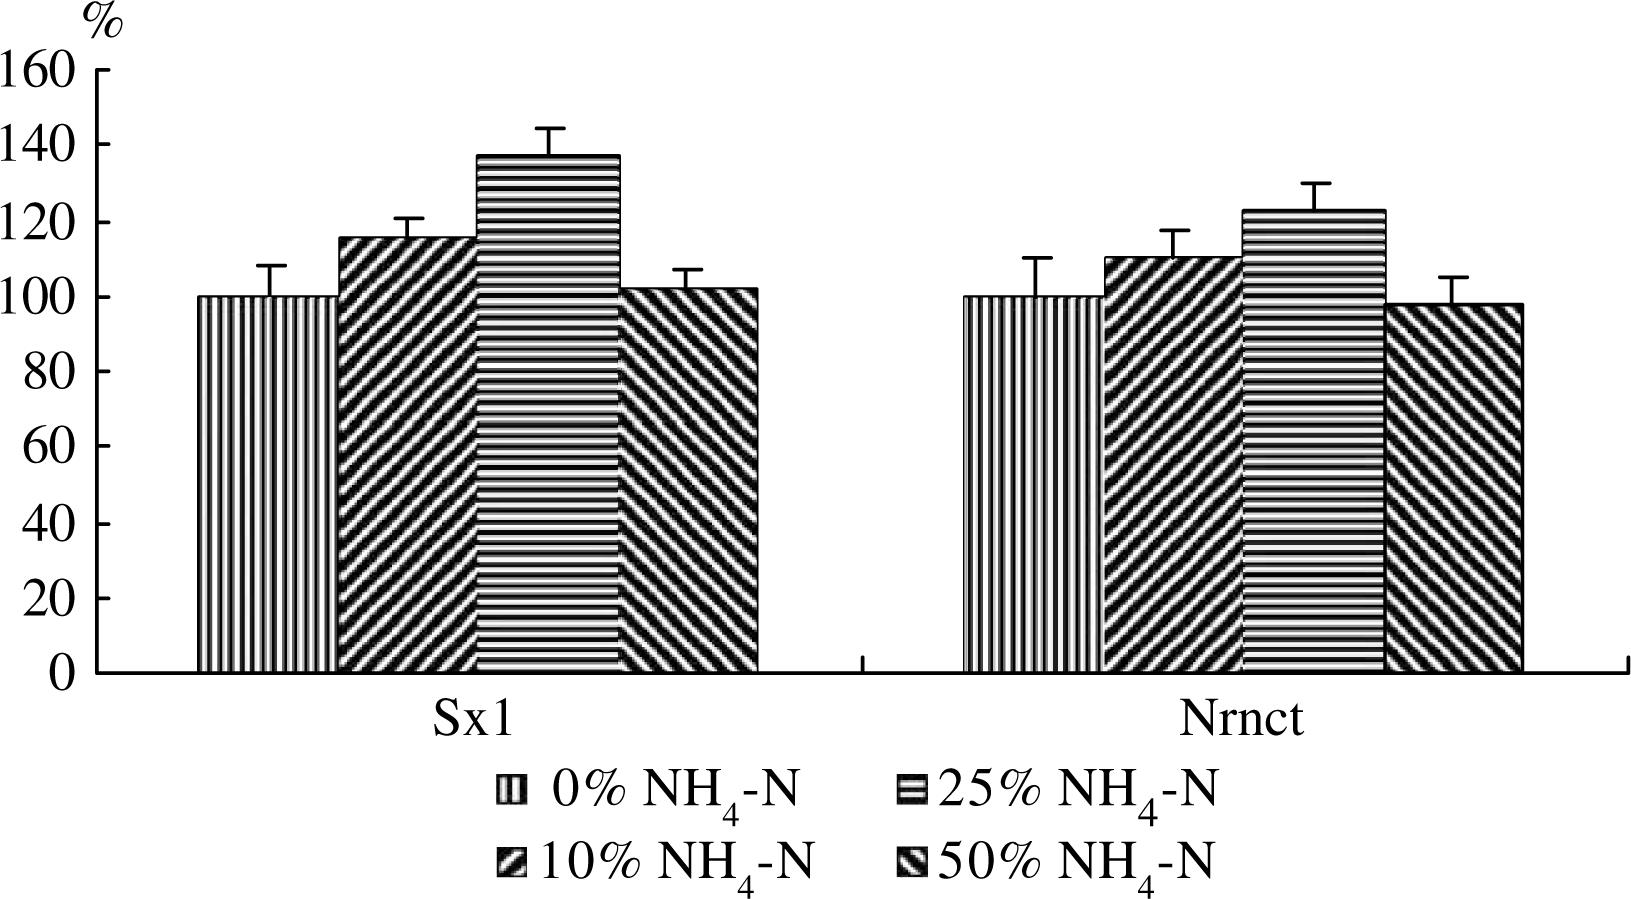 NH4 -N/NO3 - -N ratios on growth and NO3 - -N remobilization